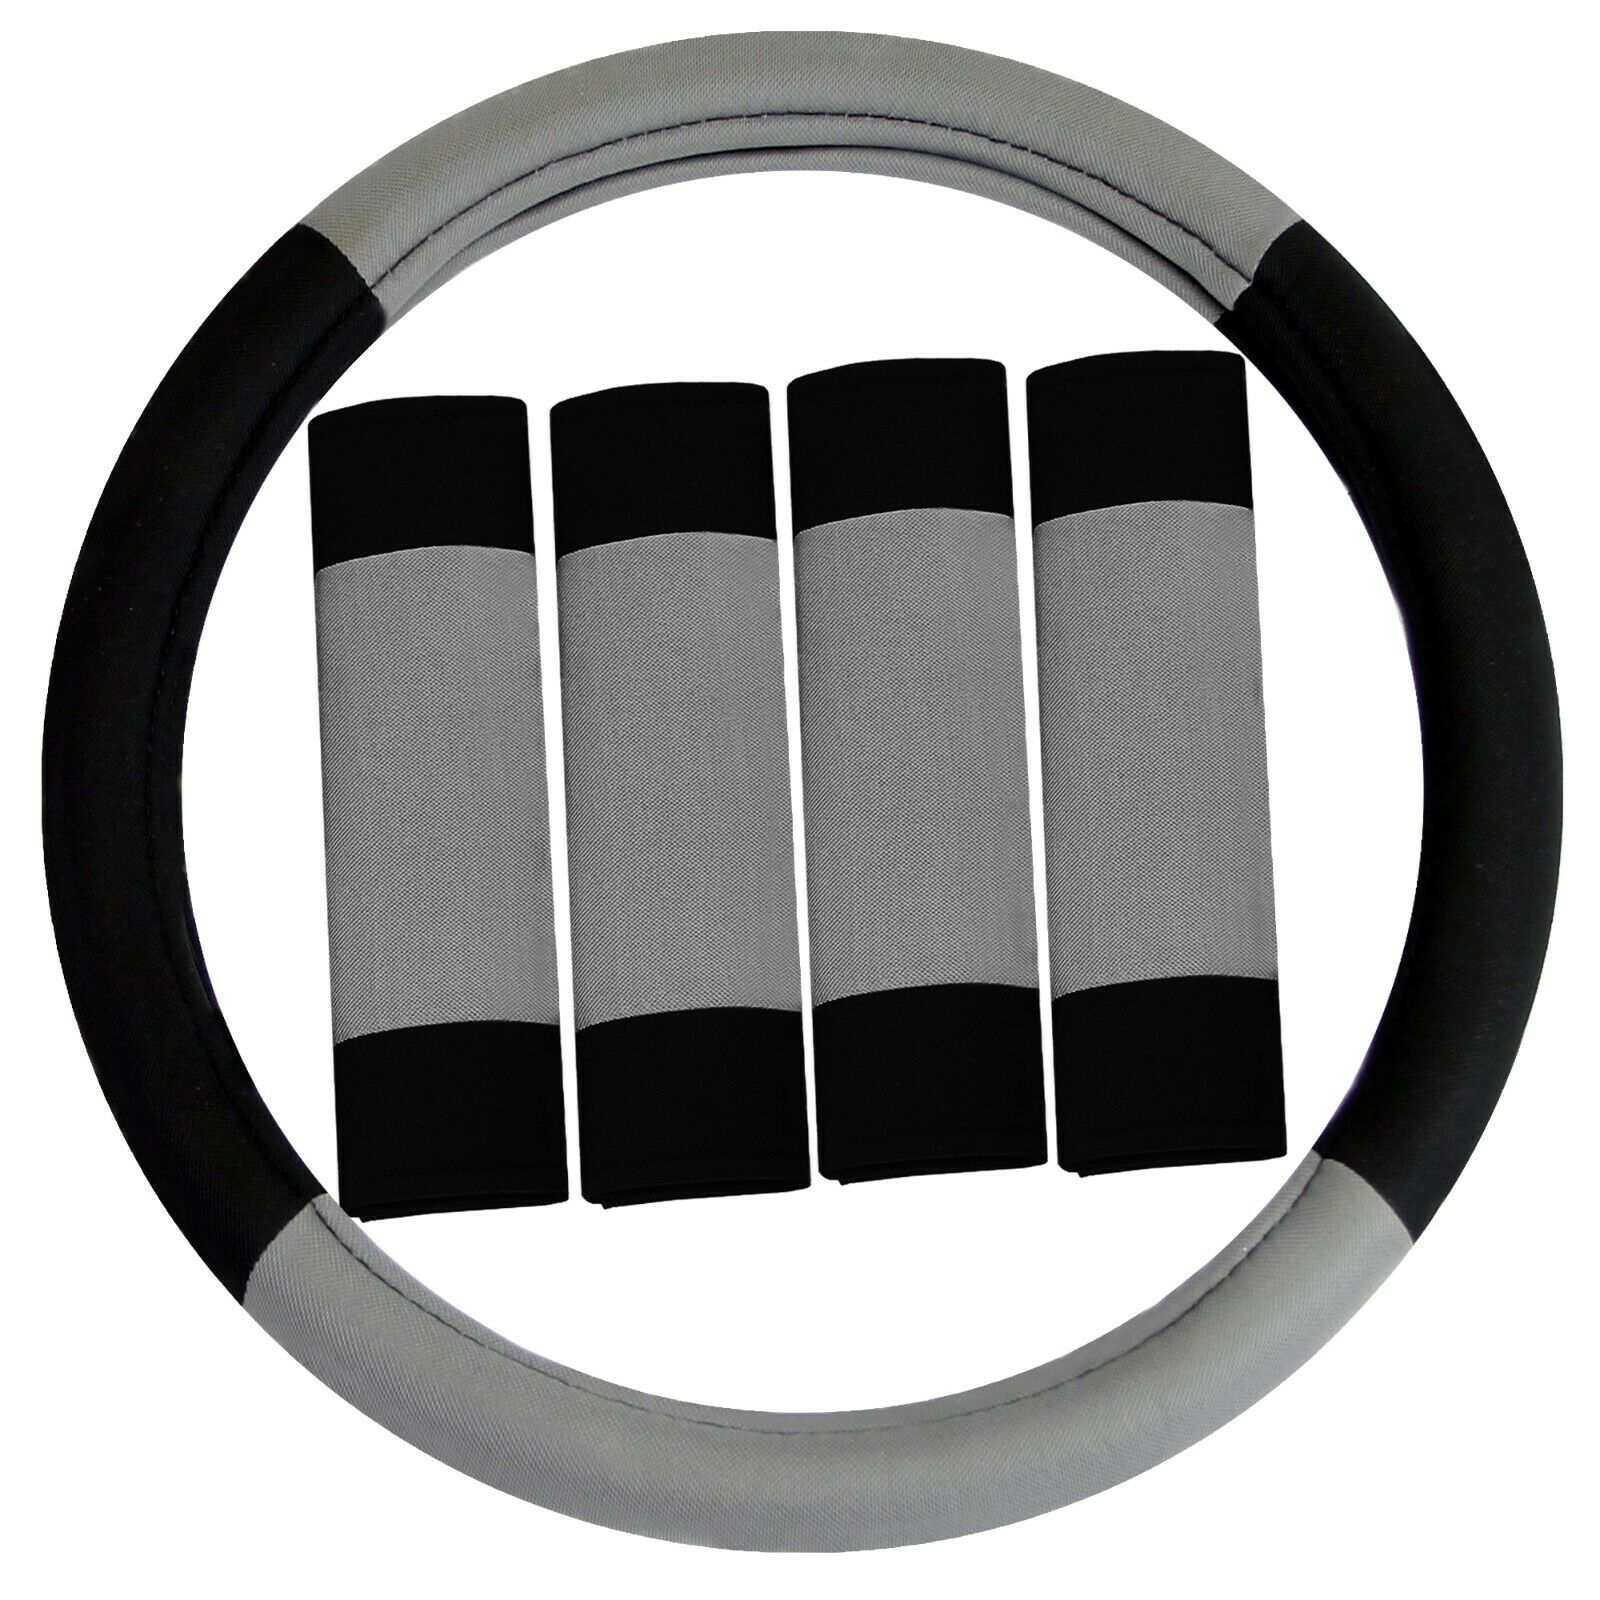 Universal Modernistic Car Steering Wheel Cover and Seat Belt Pads